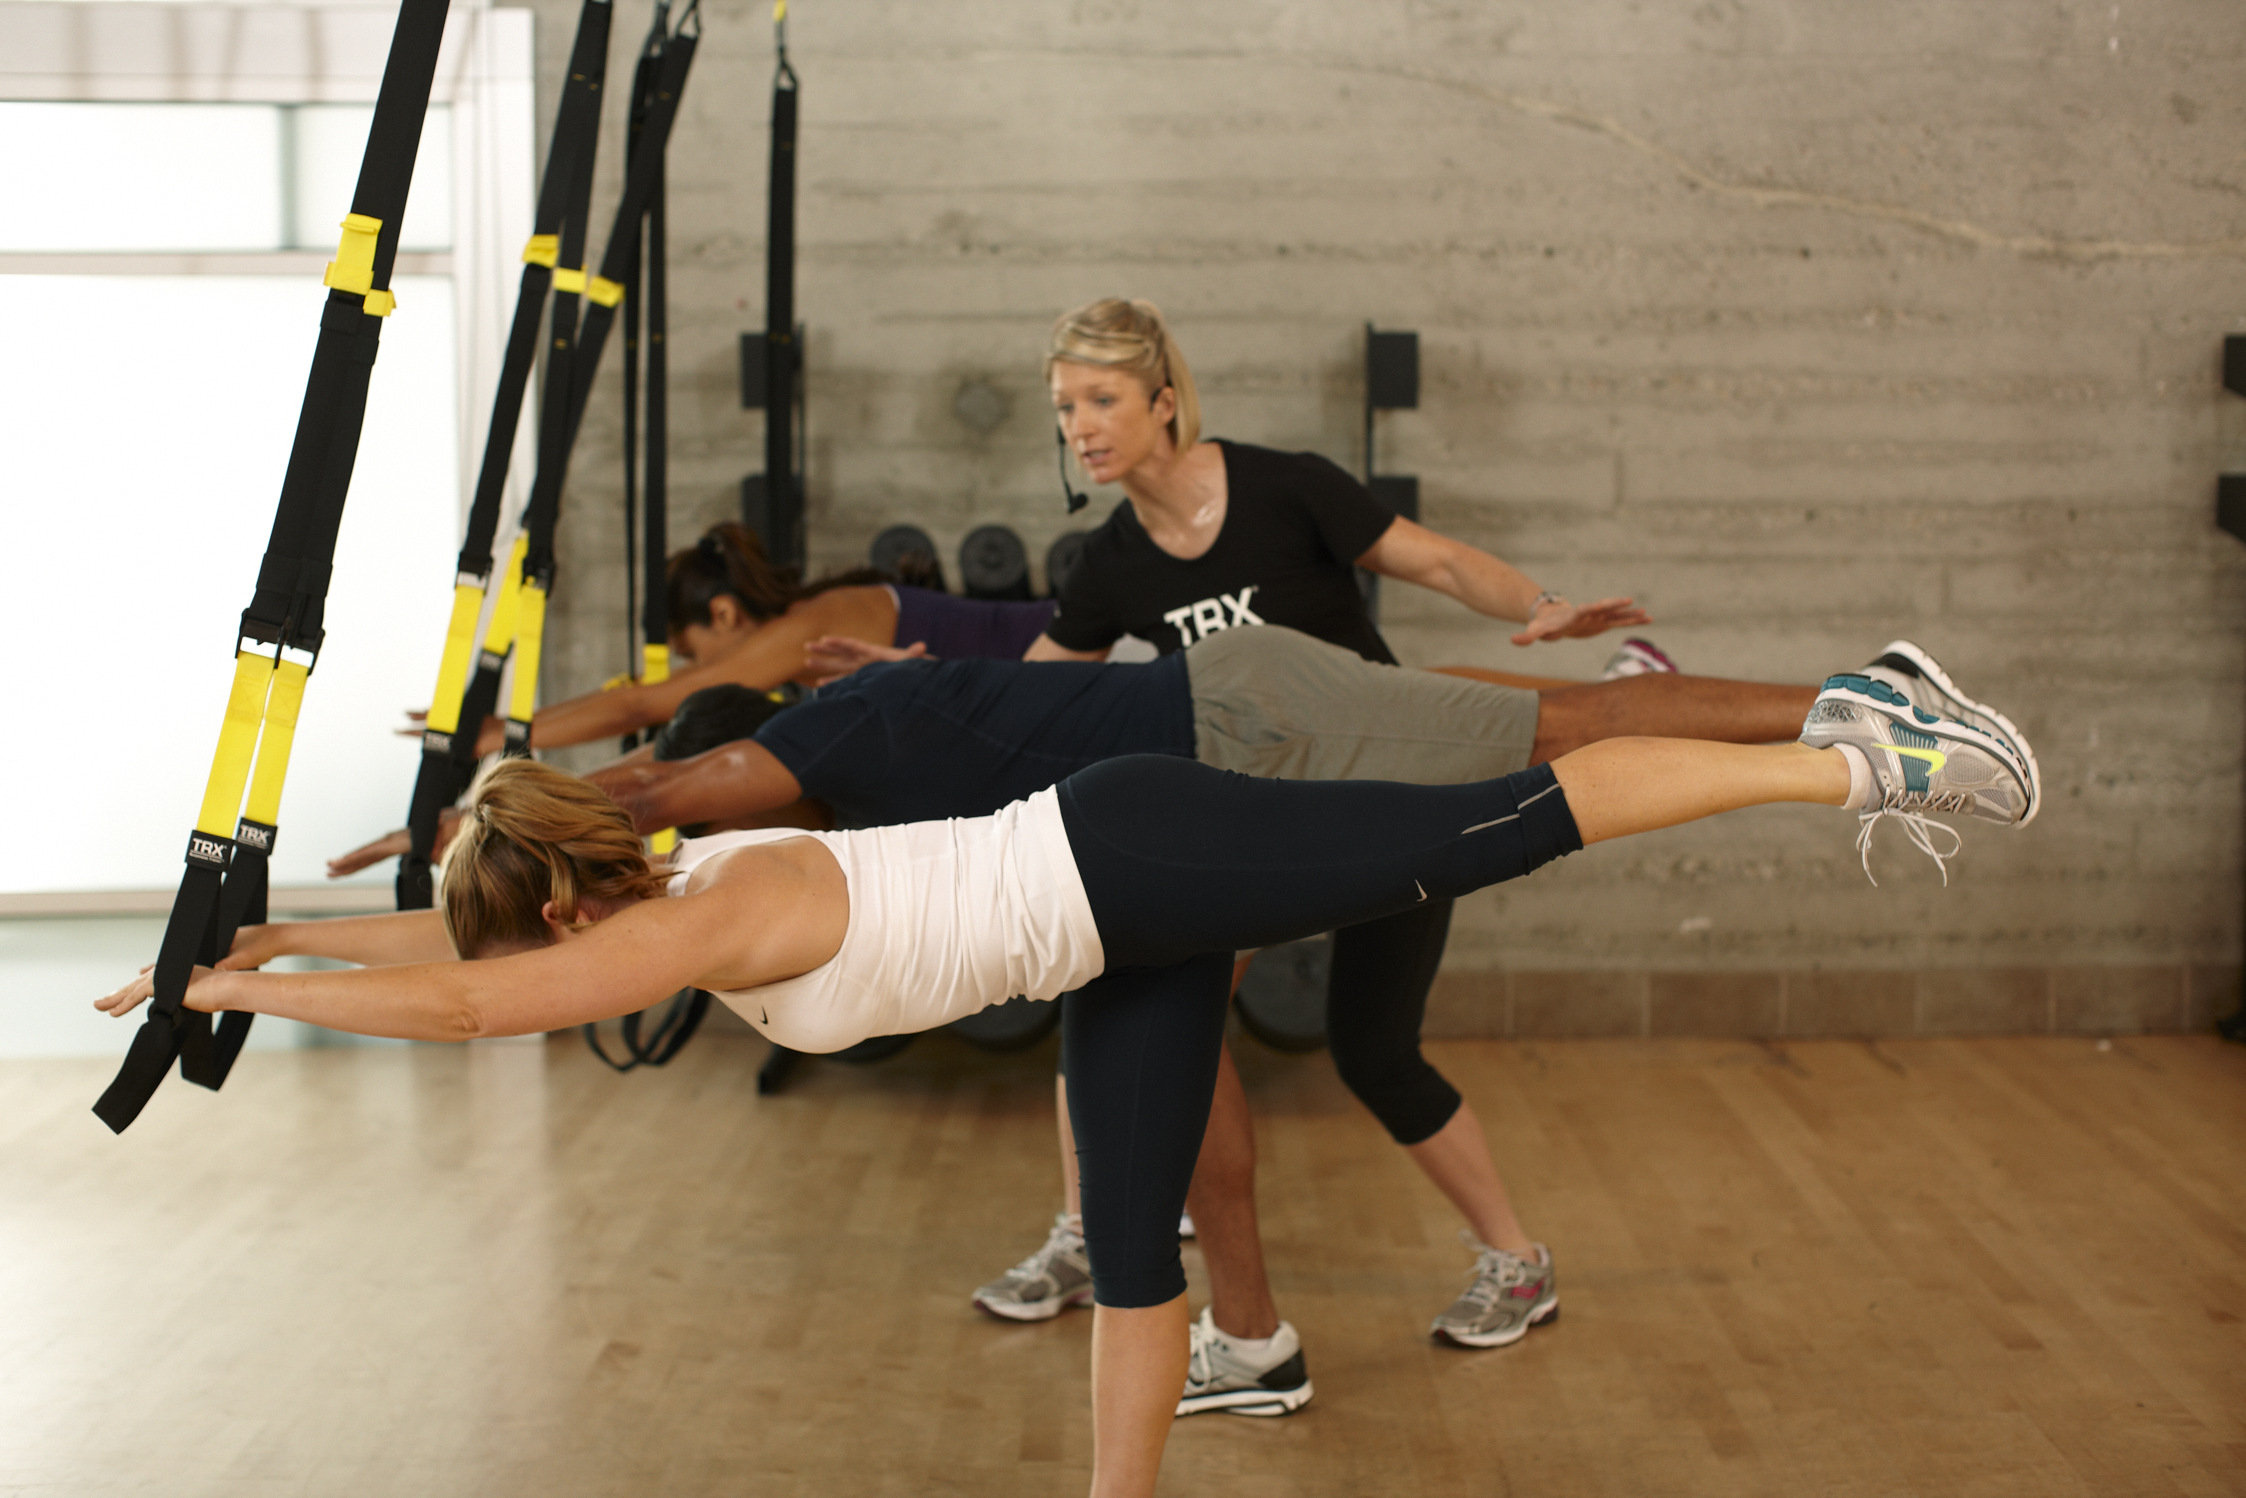 woman teaching group class on TRX Suspension Trainers